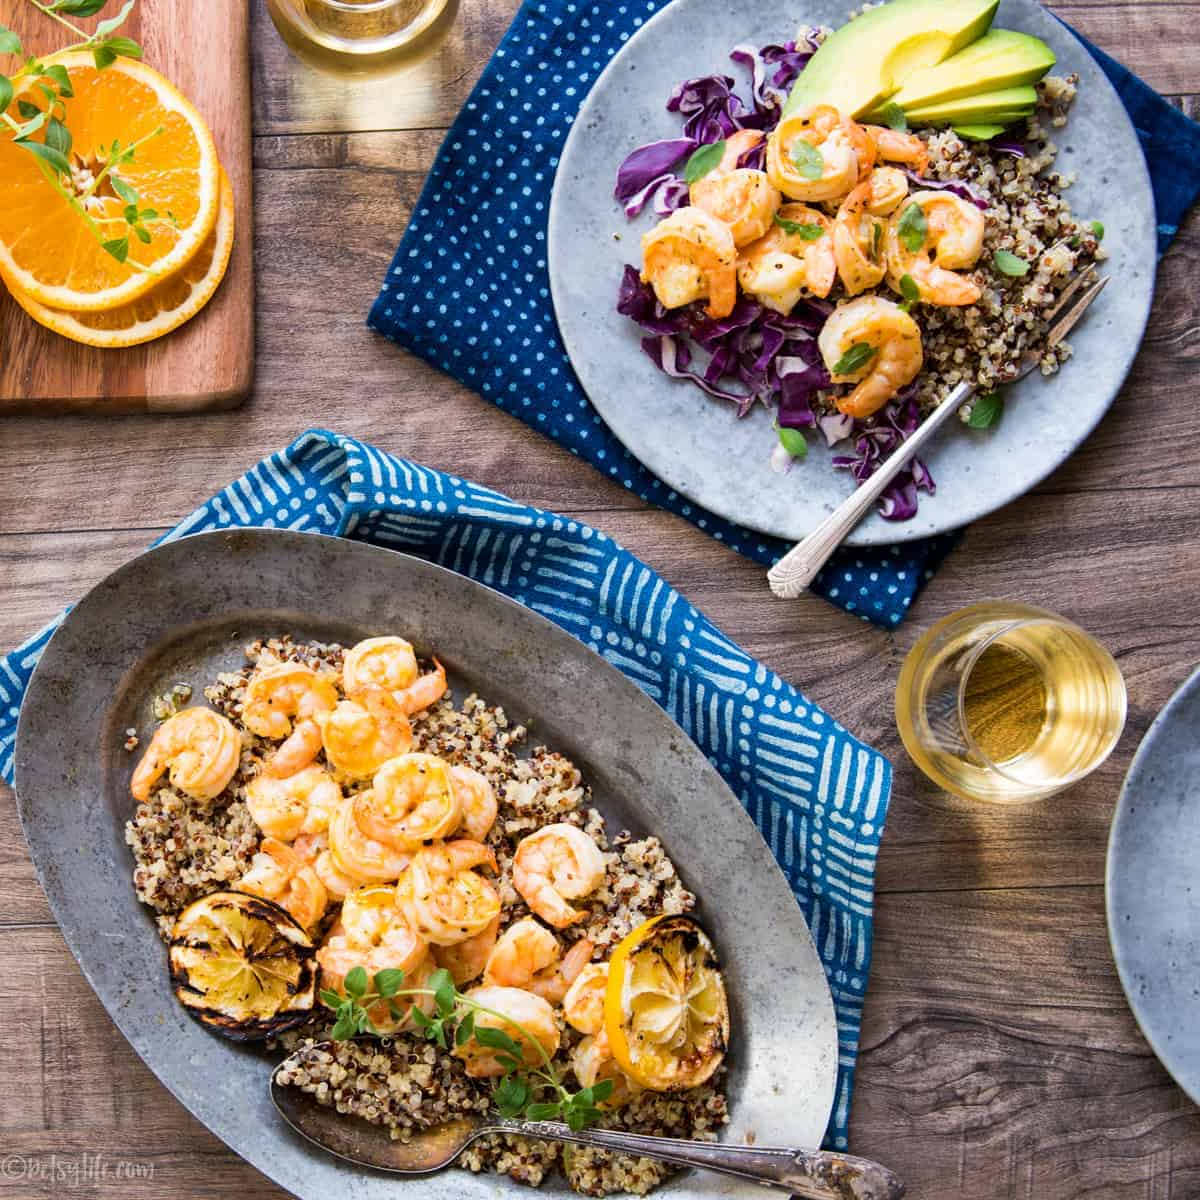 gray plate with a serving of orange shrimp, quinoa and cabbage next to a metal serving dish with the same ingredients. Two glasses of white wine and two blue napkins